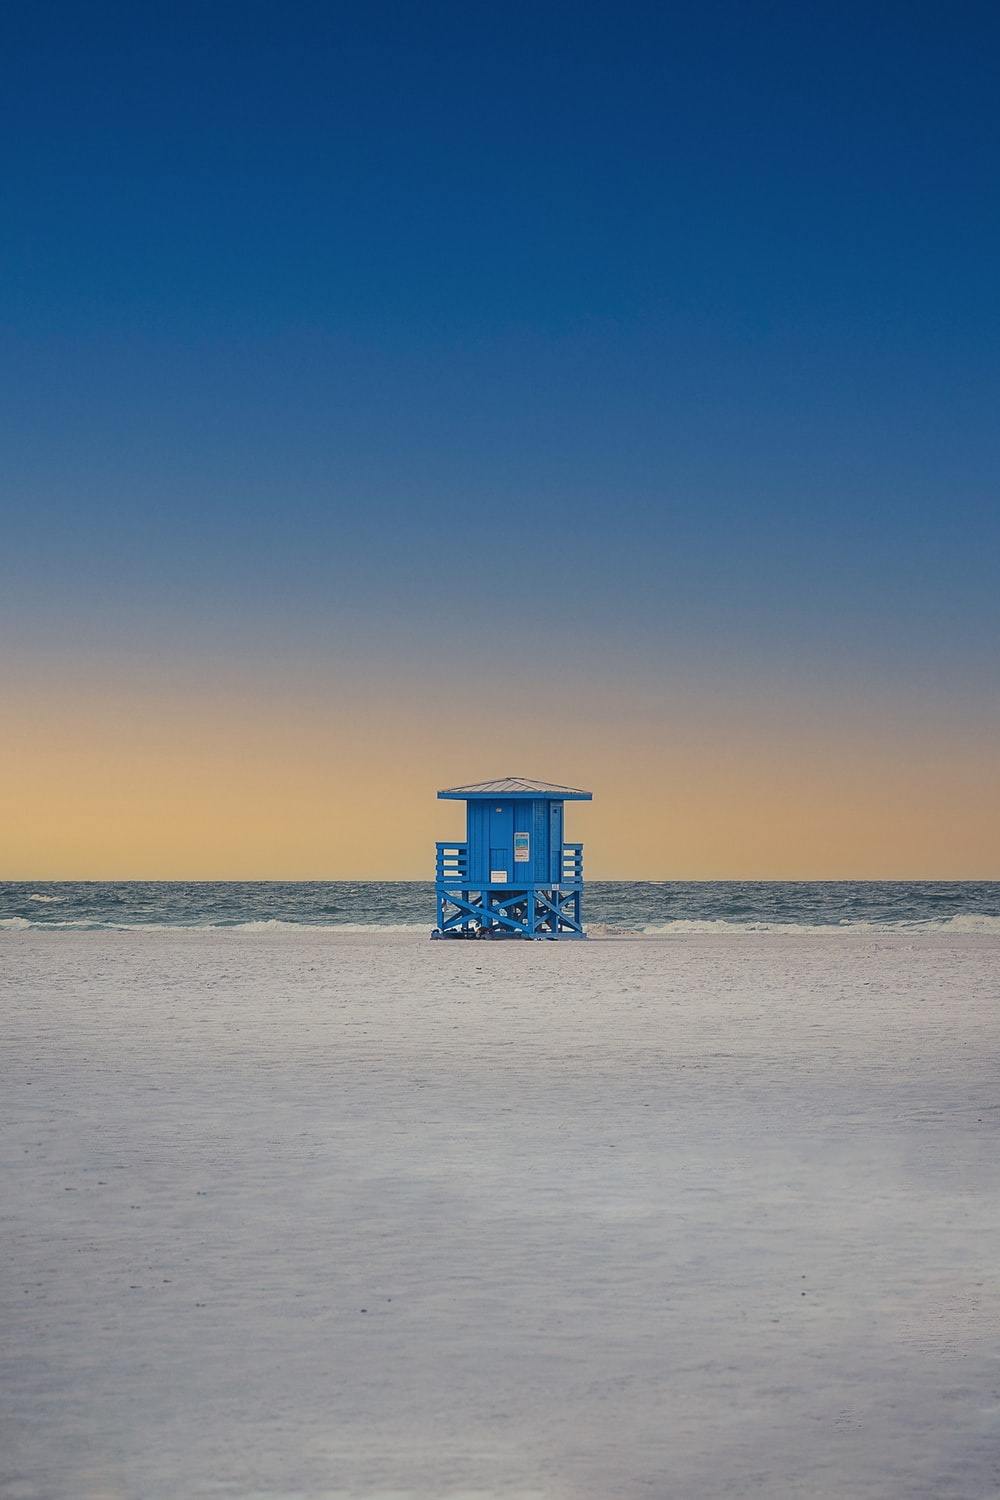 blue wooden lifeguard house on beach during daytime